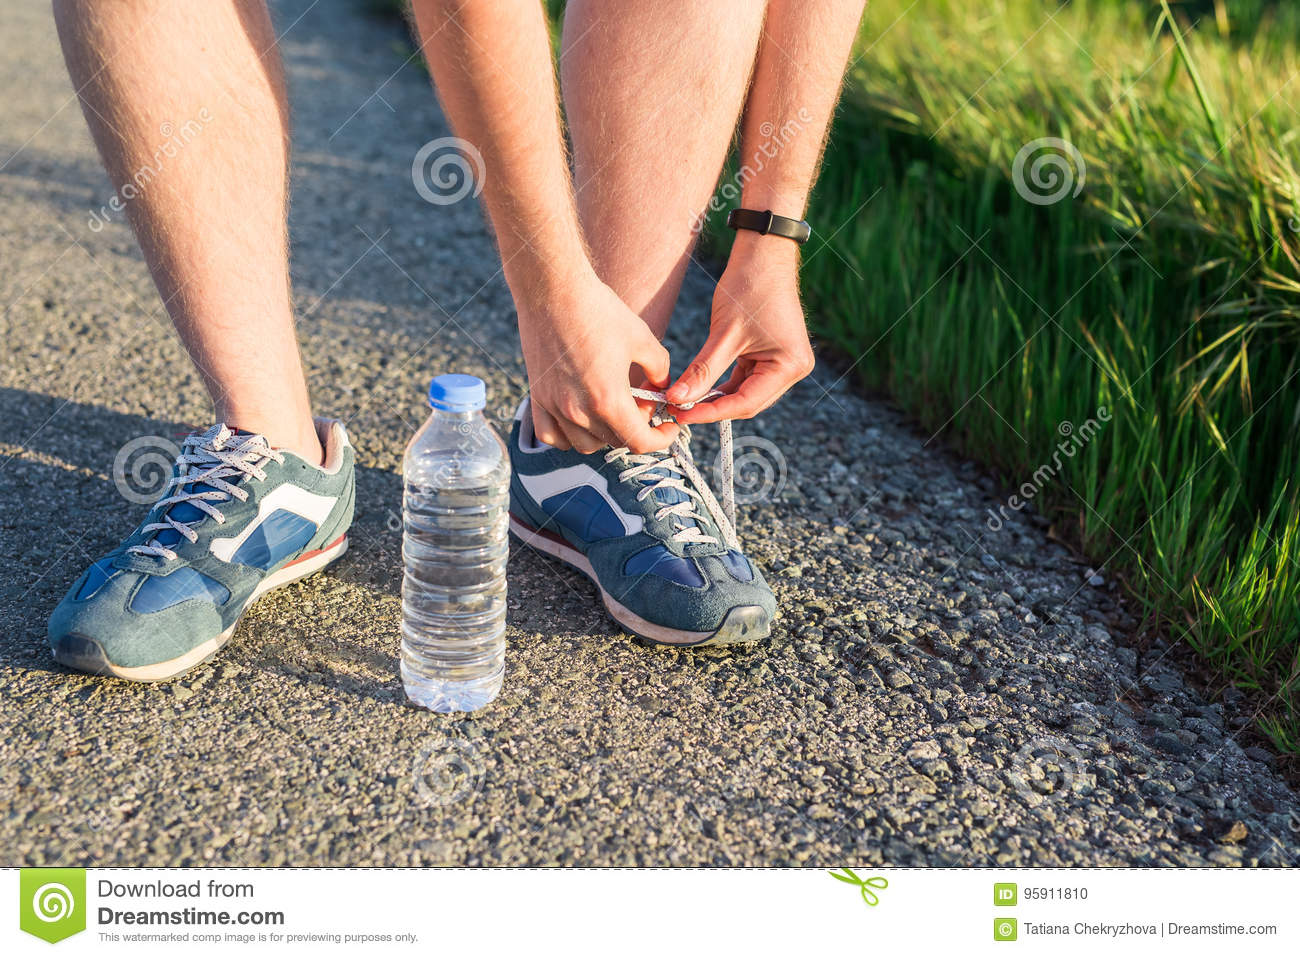 Running shoes. Barefoot running shoes close up. male athlete tying laces for jogging on road. Runner ties getting ready